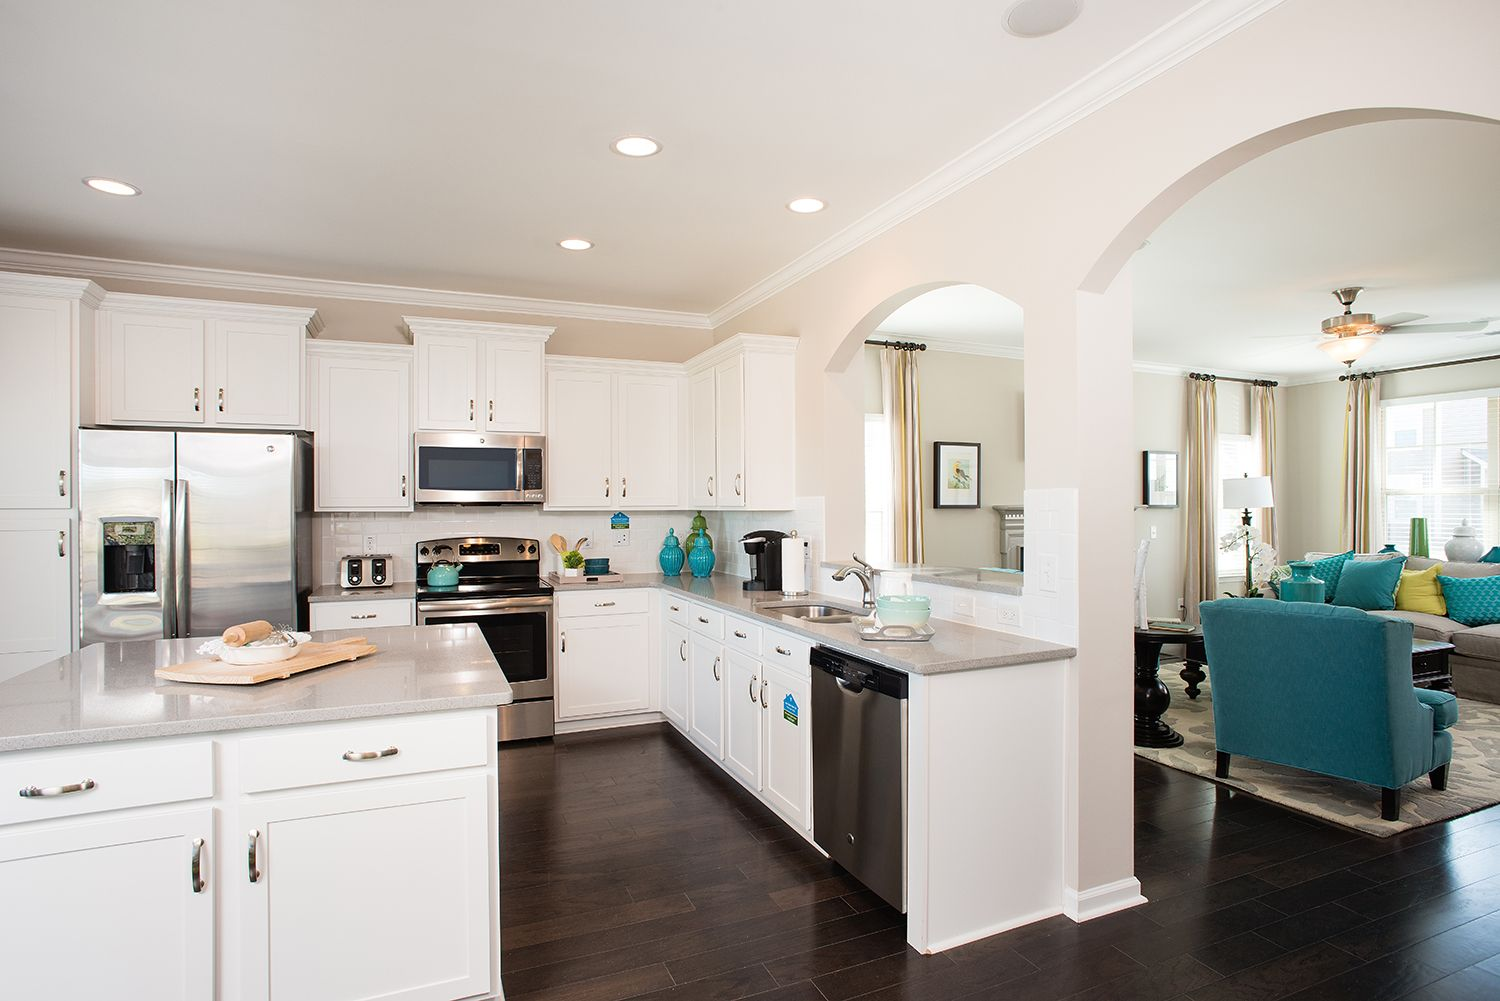 Kitchen featured in The Langford By Goodall Homes in Huntsville, AL